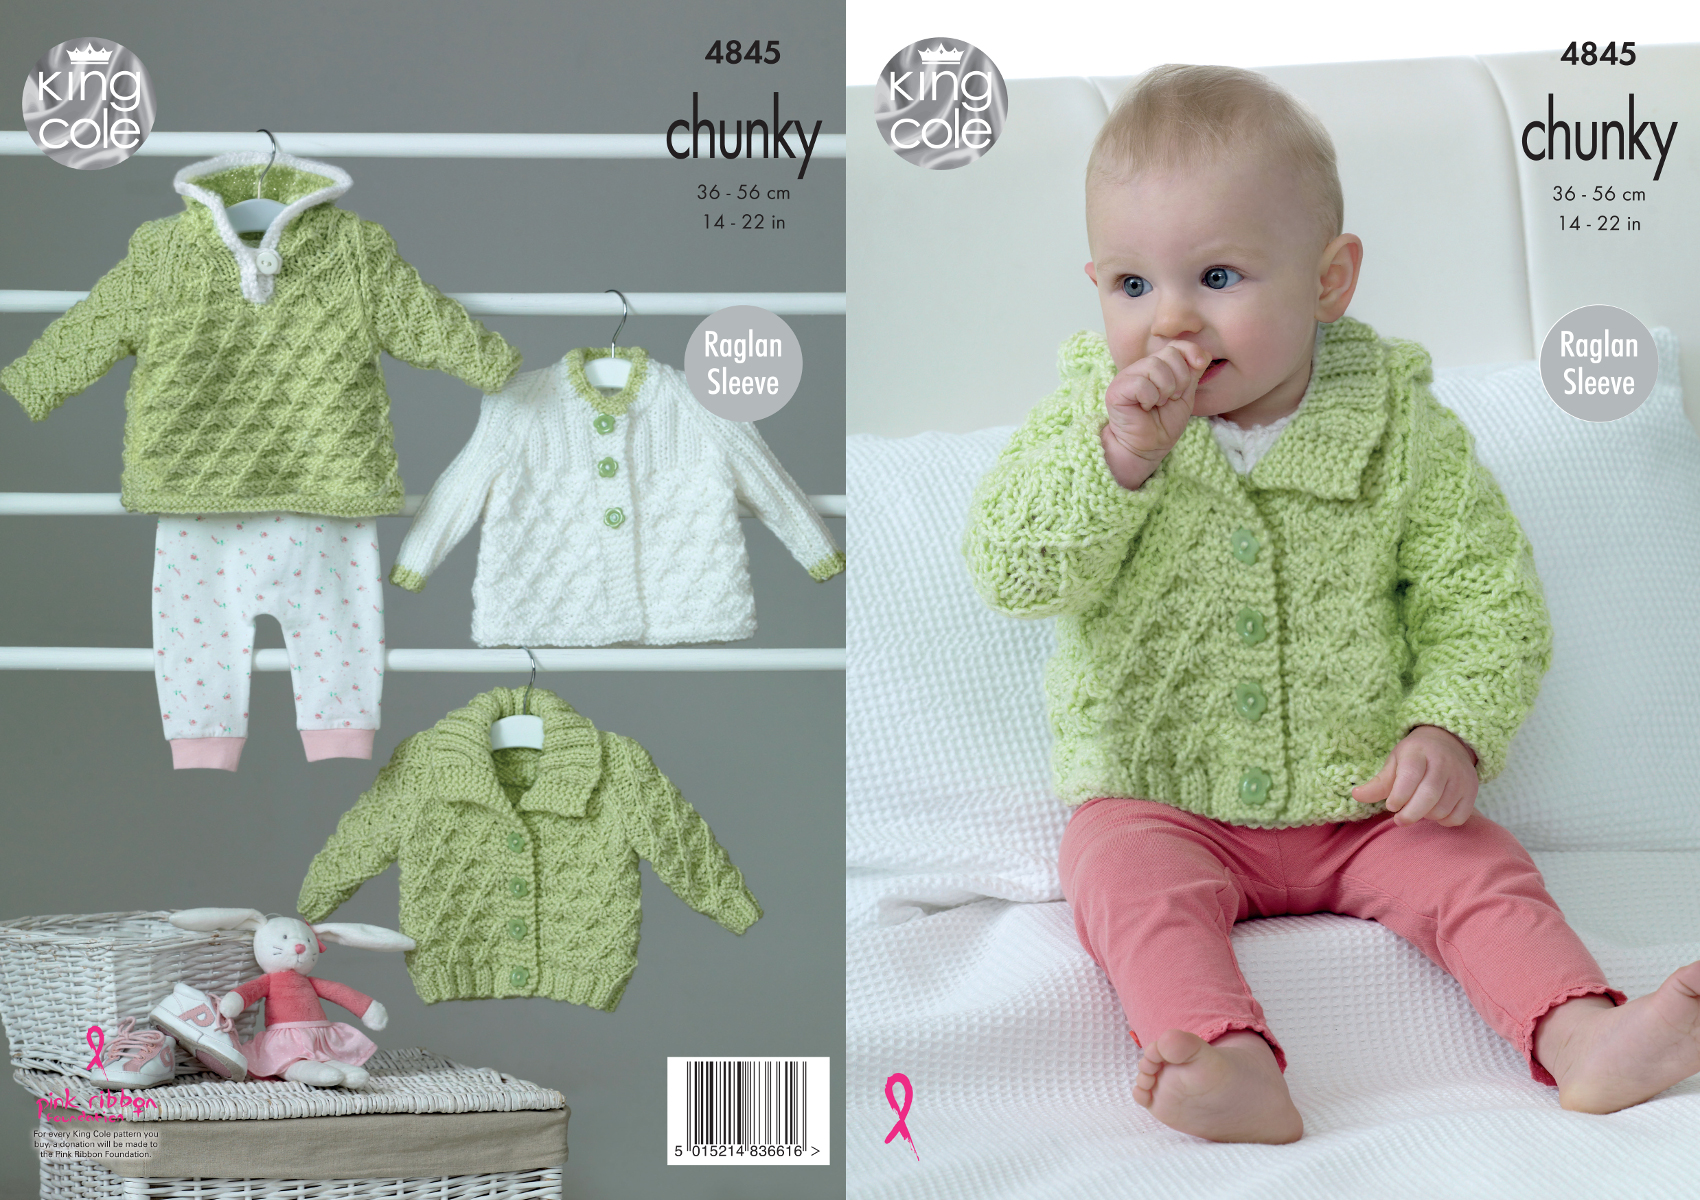 d9e8f0caf King Cole Baby Chunky Knitting Pattern Raglan Hoody Jacket   Matinee ...